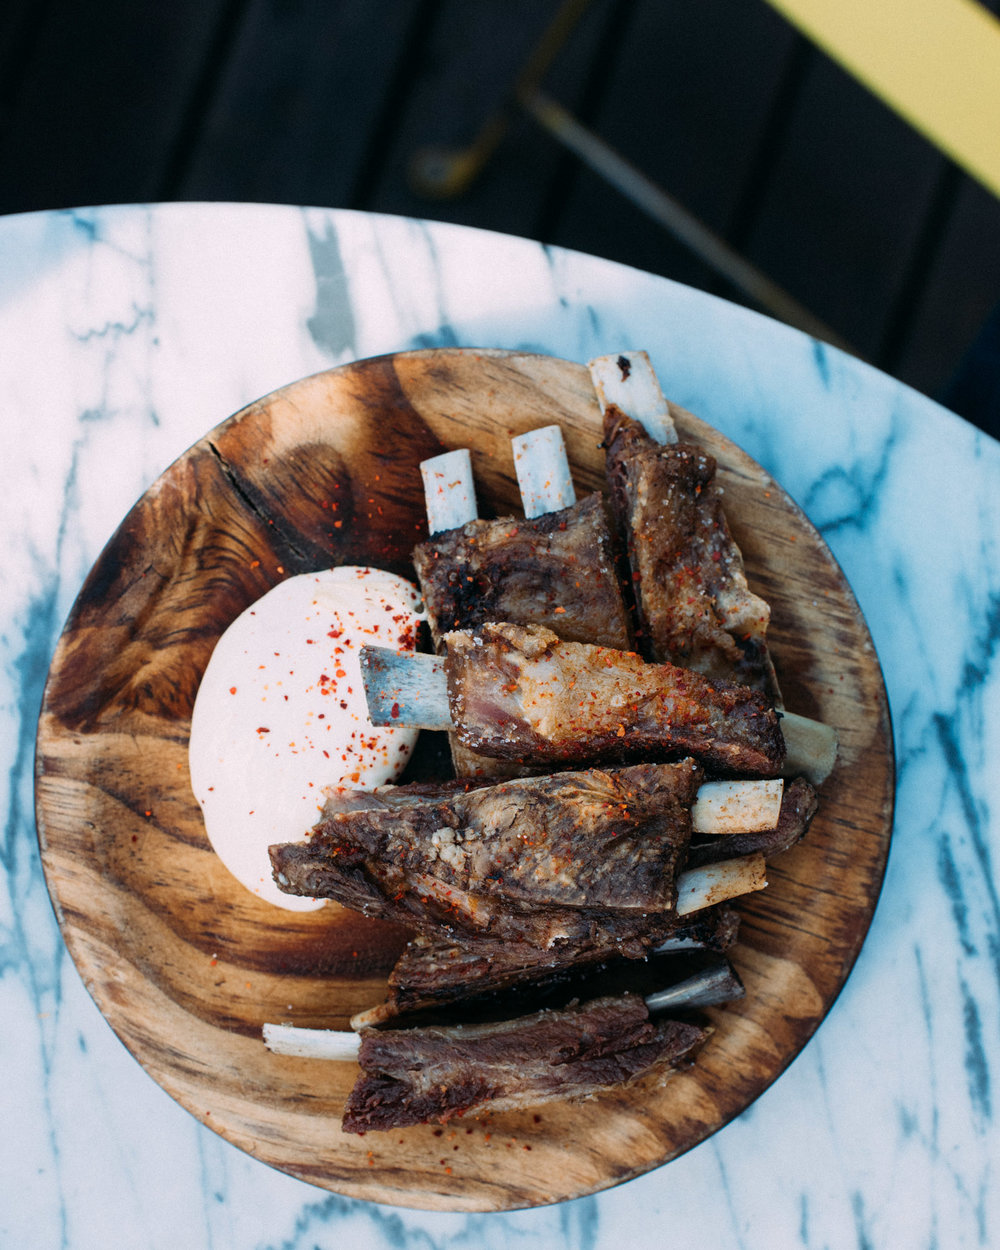 Fried Lamb Ribs, Piment d'espelette, Aioli Naked in the Sky - Melbourne, Australia